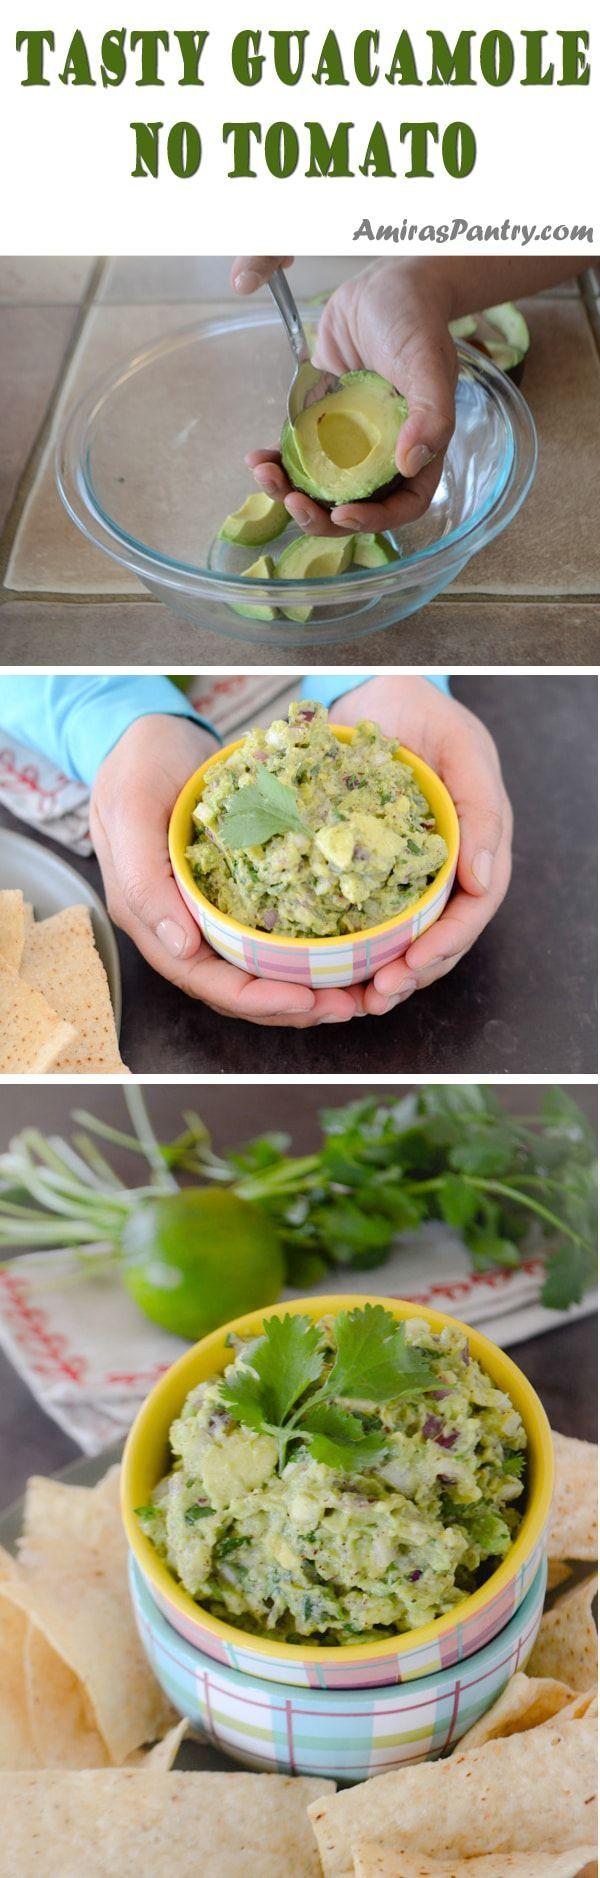 How do you make guacamole dip ? This is a tasty guacamole recipe that is adaptable to your liking. Rich, chunky with an amplified flavors. #avocado #guacamole #guac | amiraspantry.com